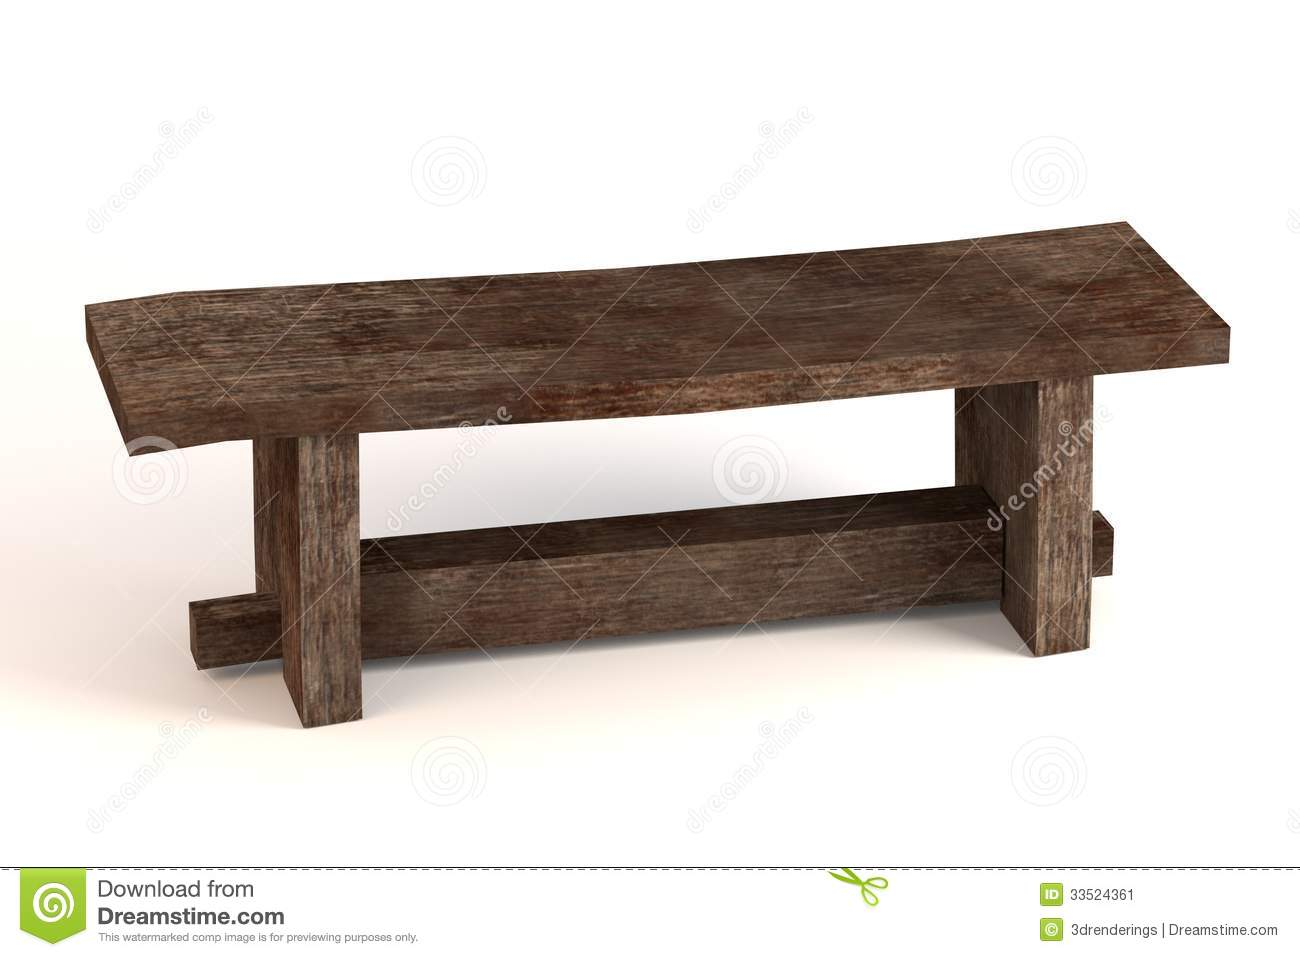 Medieval bench stock illustration. Illustration of gothic ...